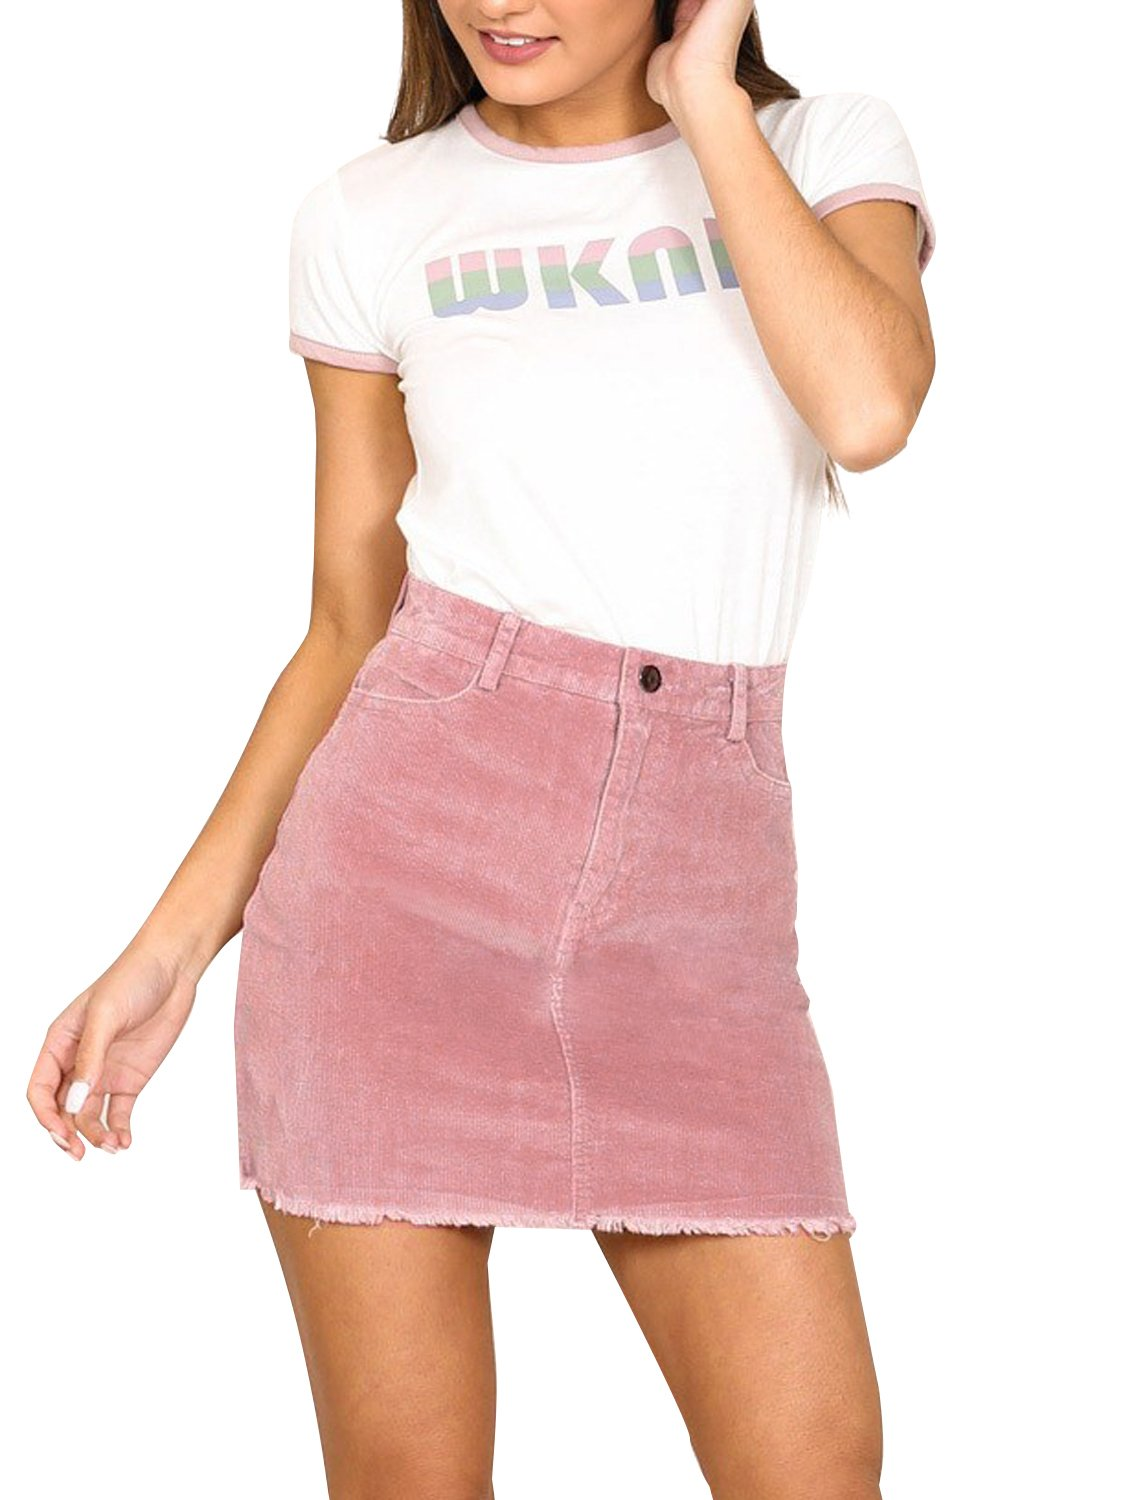 Simplee Women's Vintage Retro Corduroy High Waisted Bodycon Mini Skirt Pink Pink 4/6